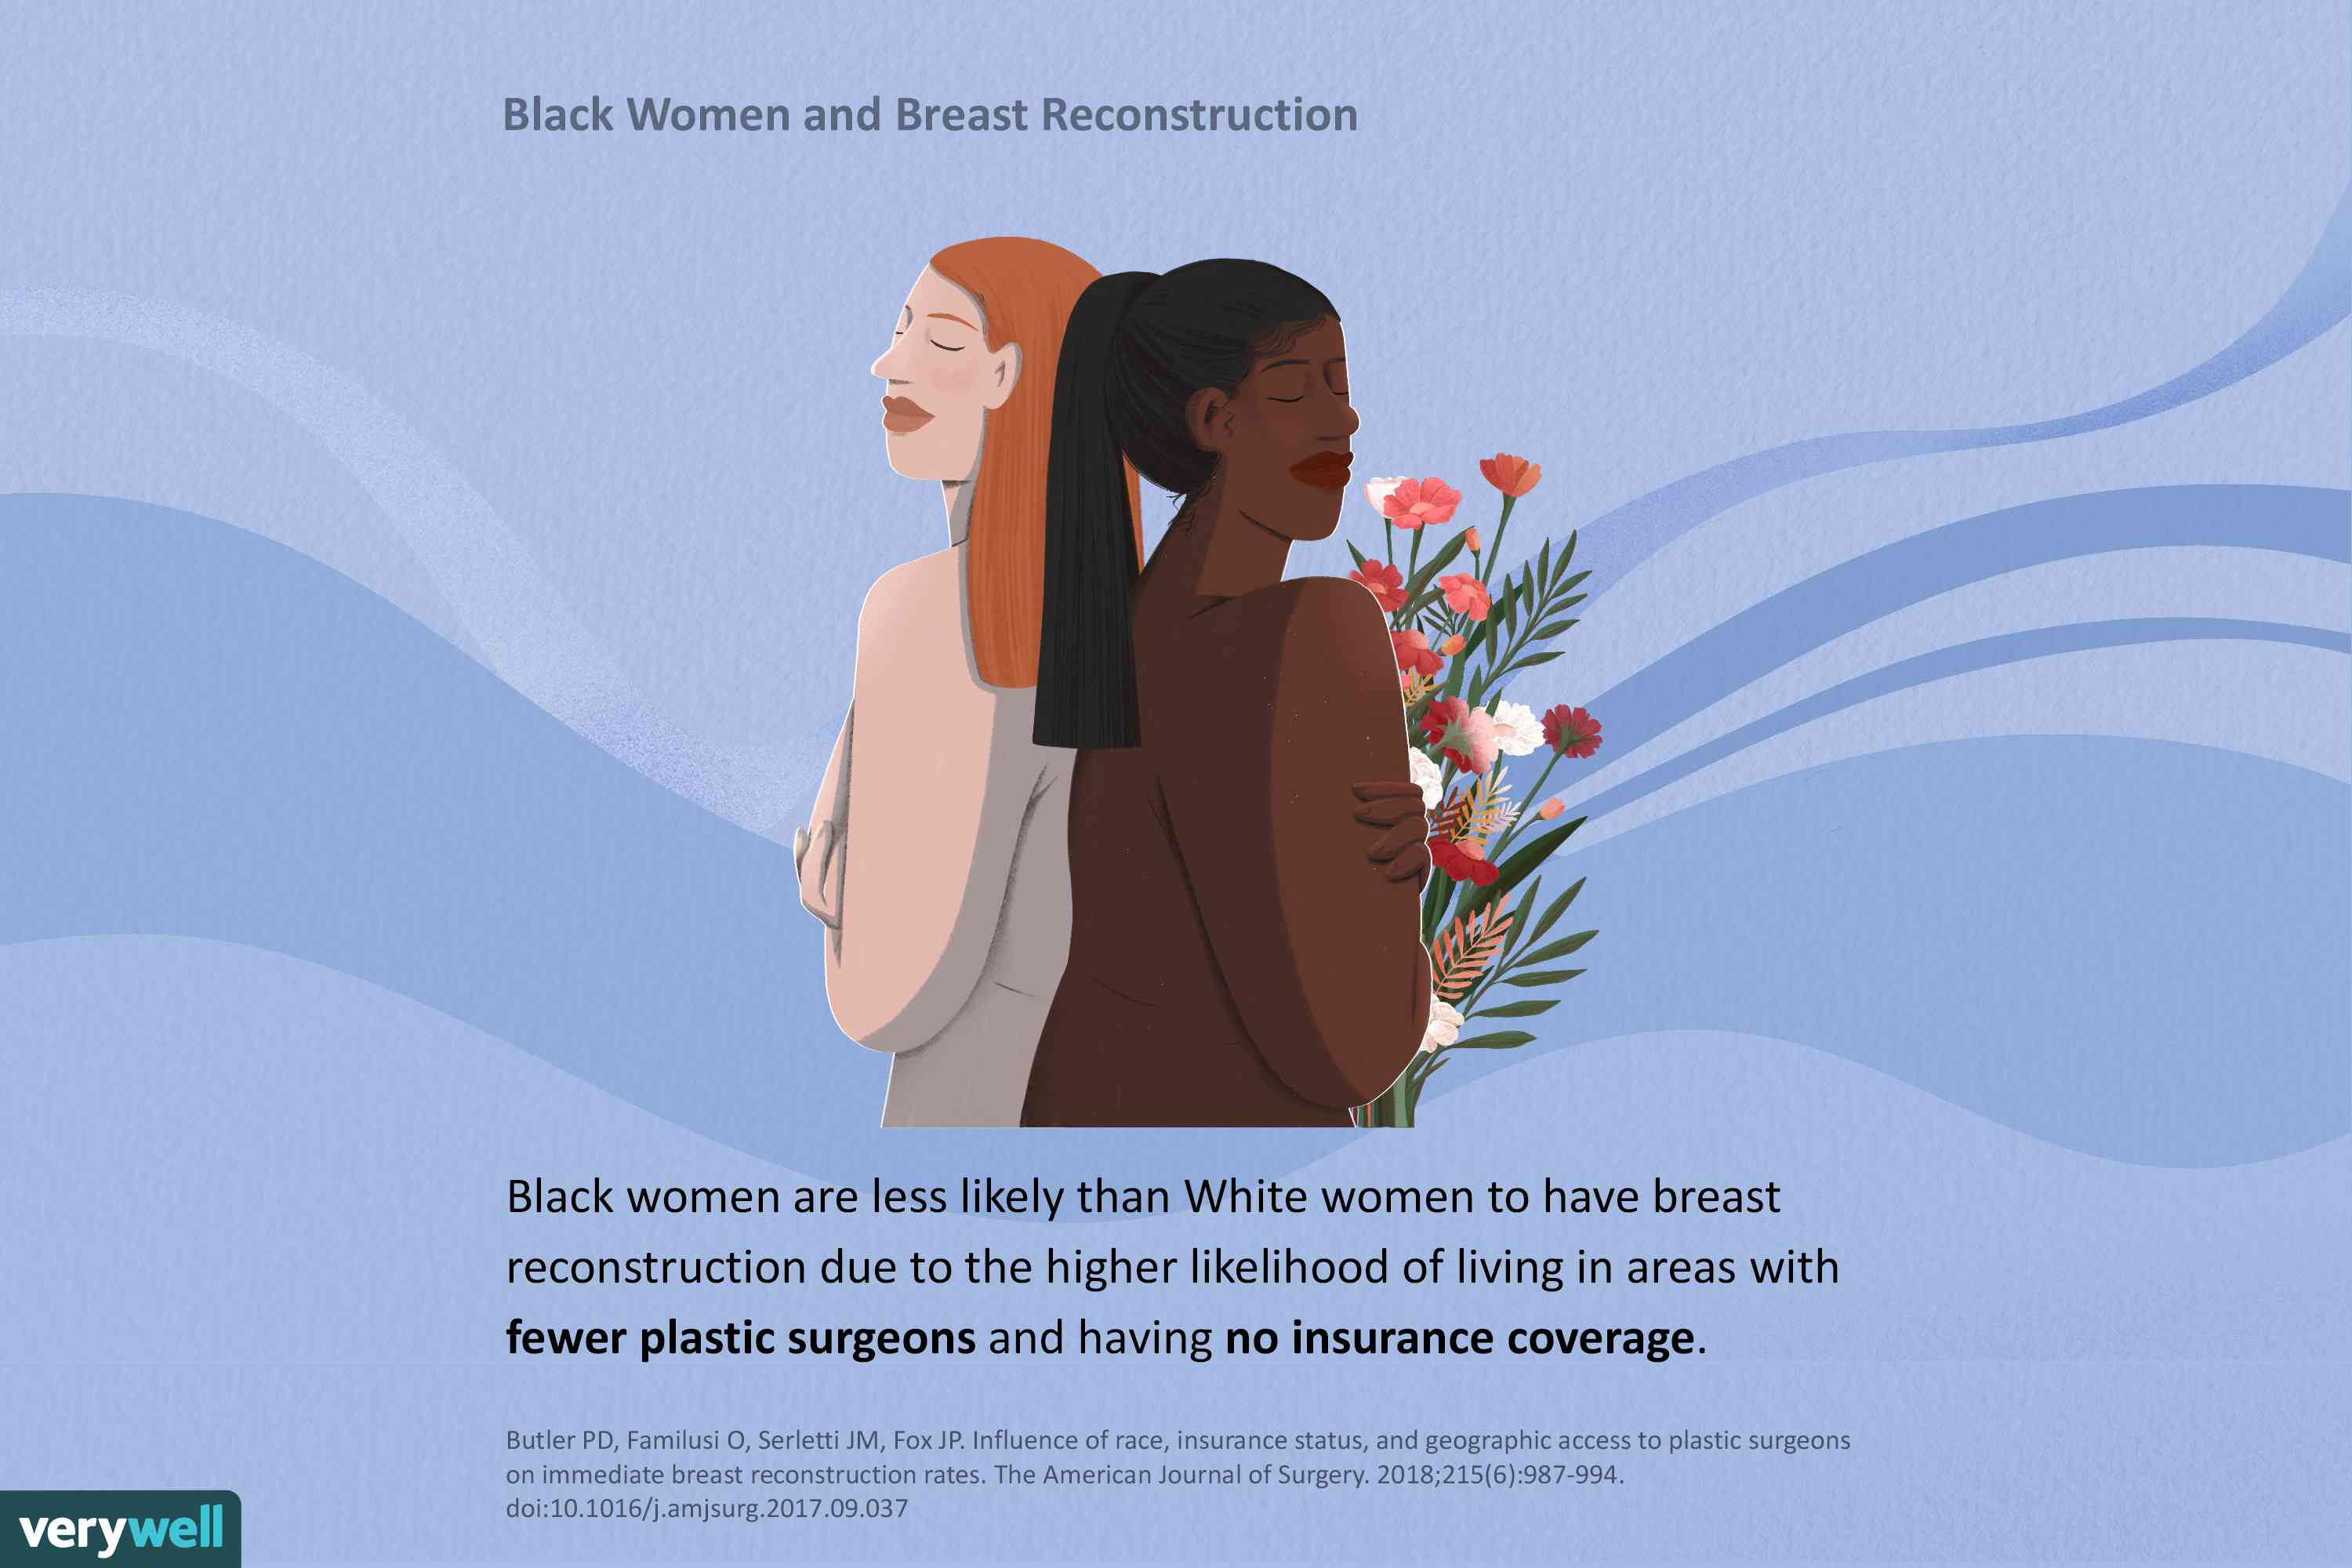 Black women and breast reconstruction